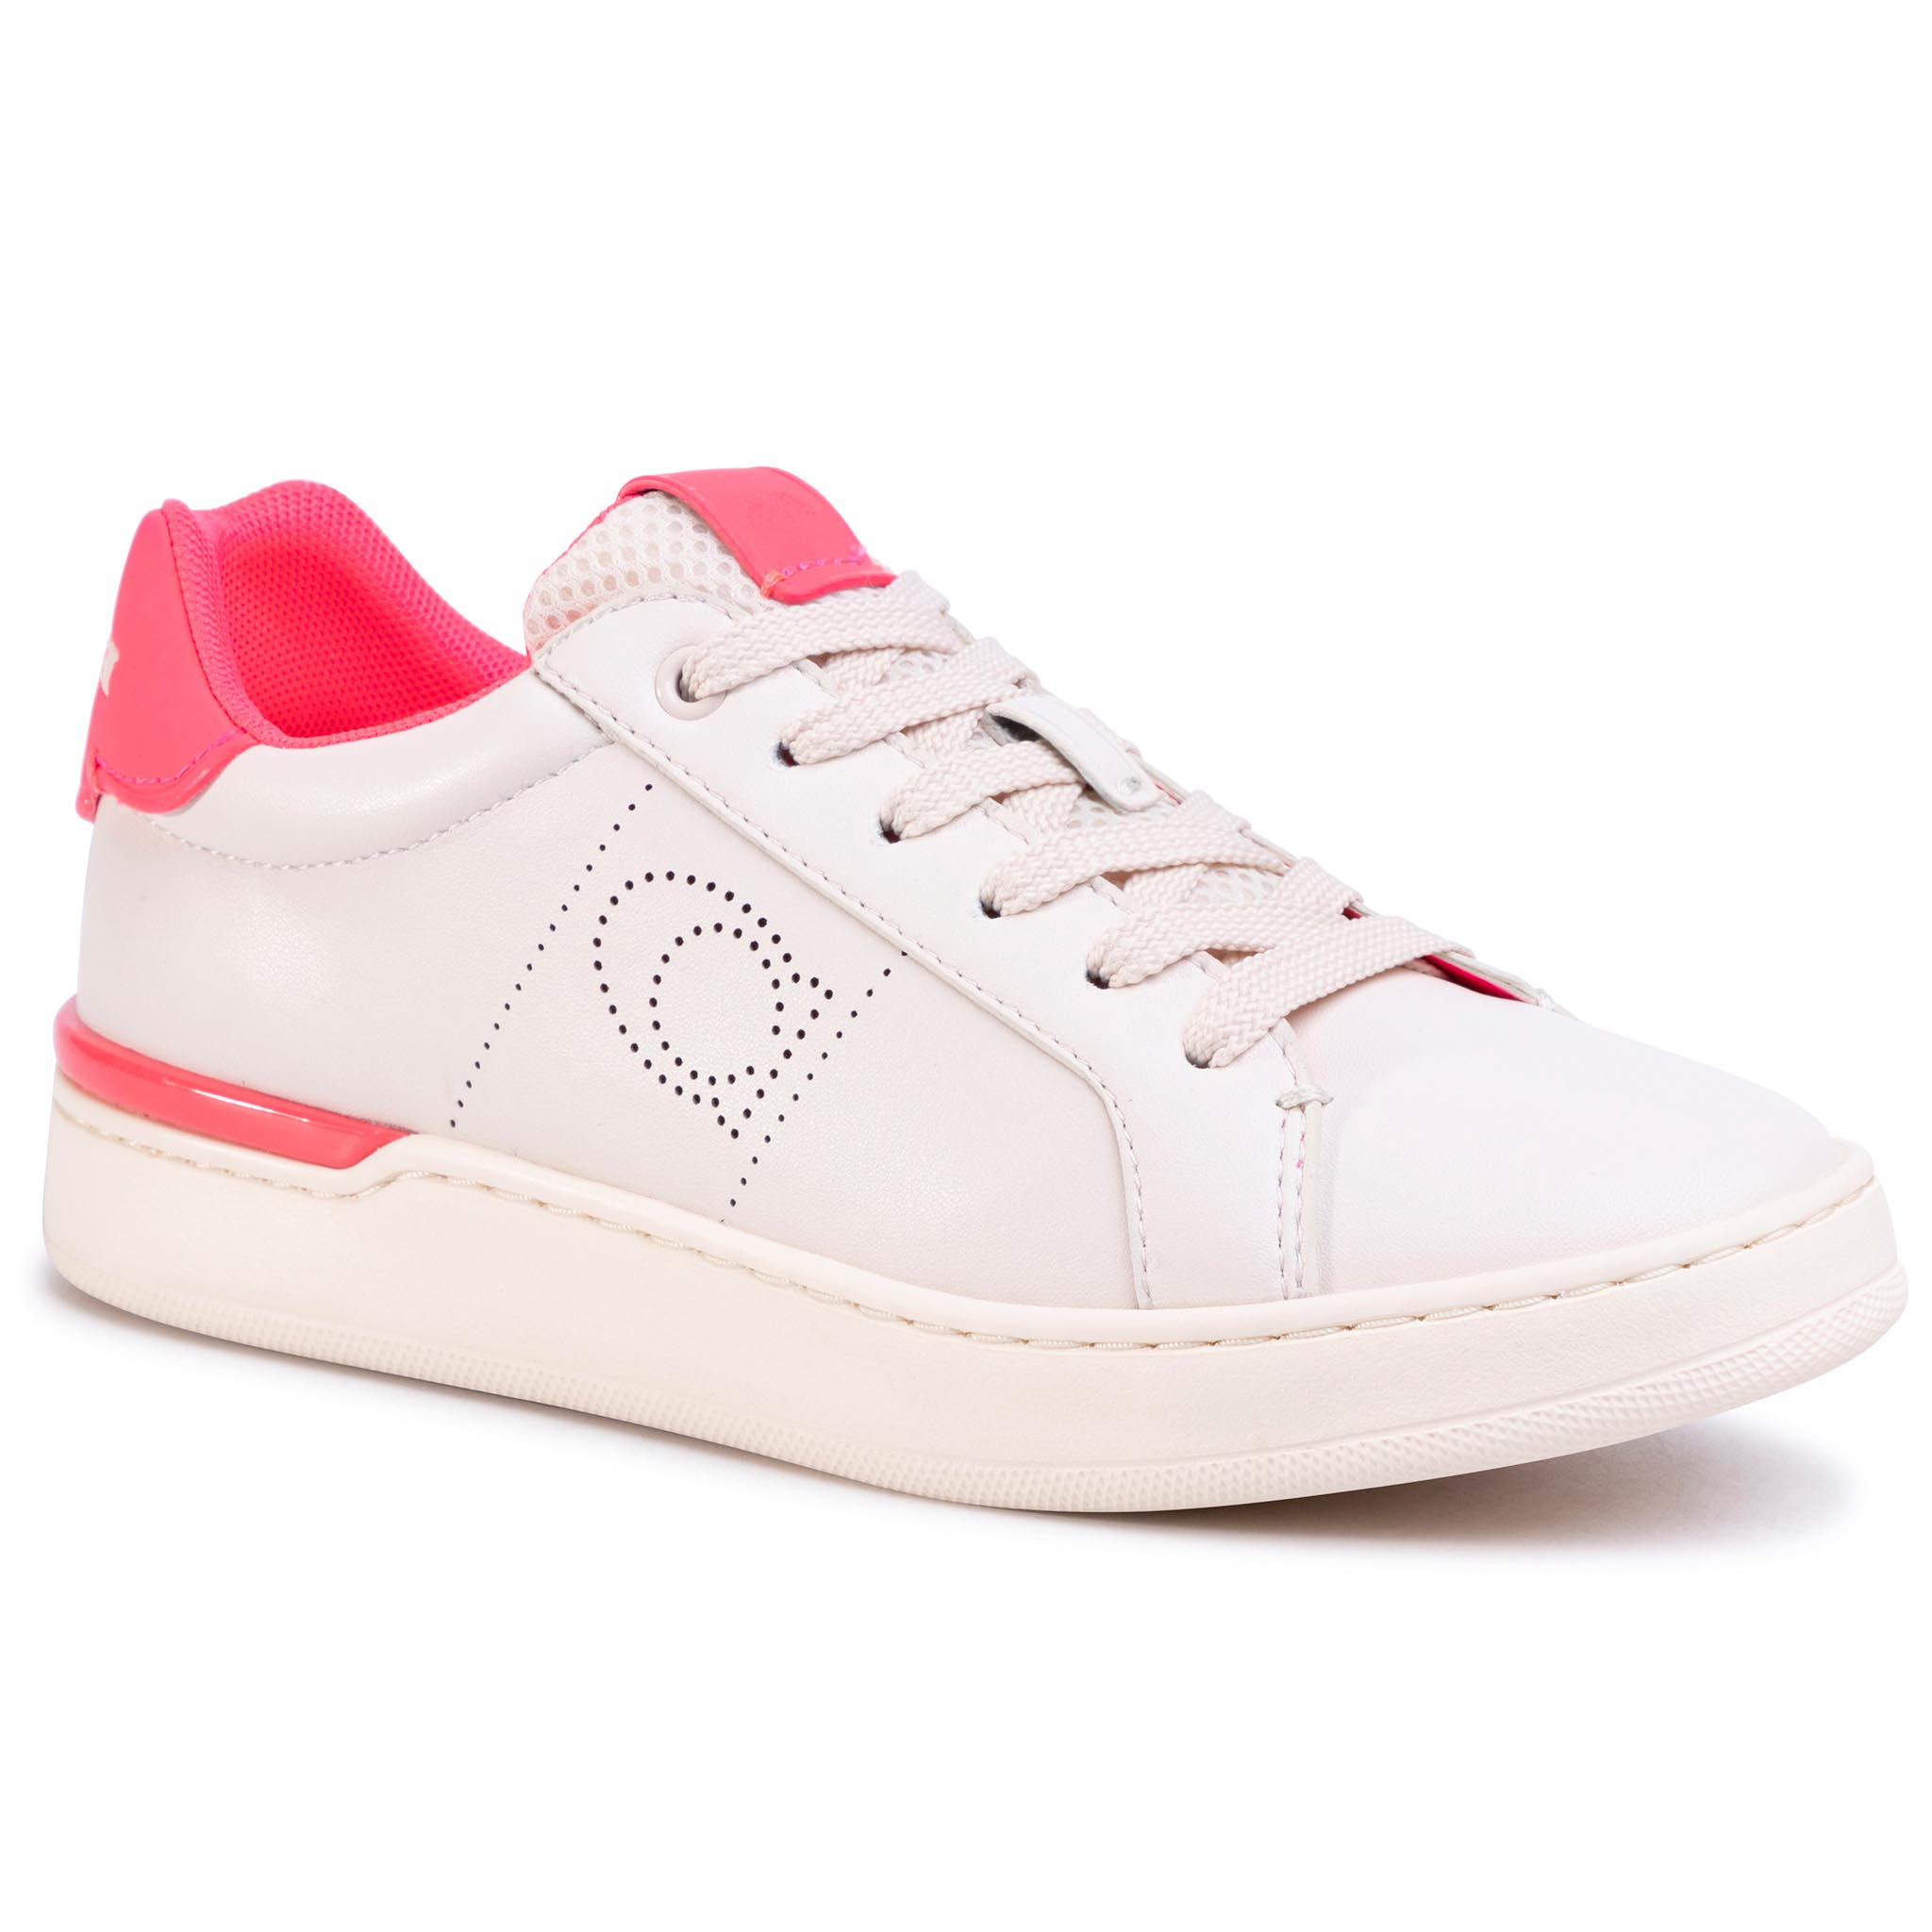 Sneakers COACH - Lowline Ltr Low Top G5040 10011275 Chalk/Neon Pink